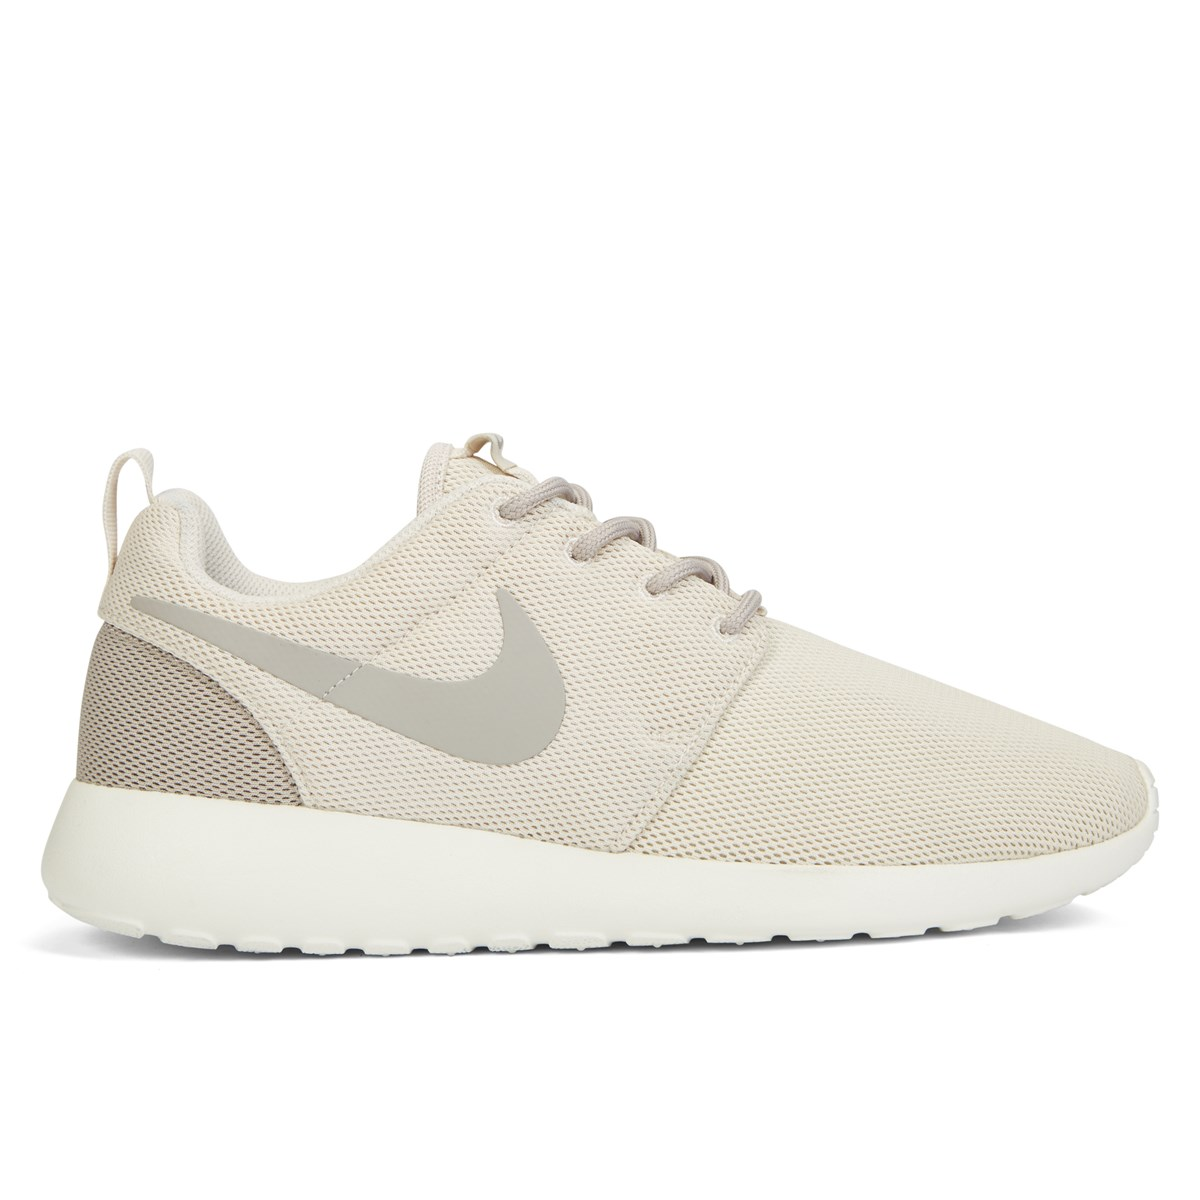 low priced 923ca 2fd9f Women's Roshe One LT Taupe Sneaker